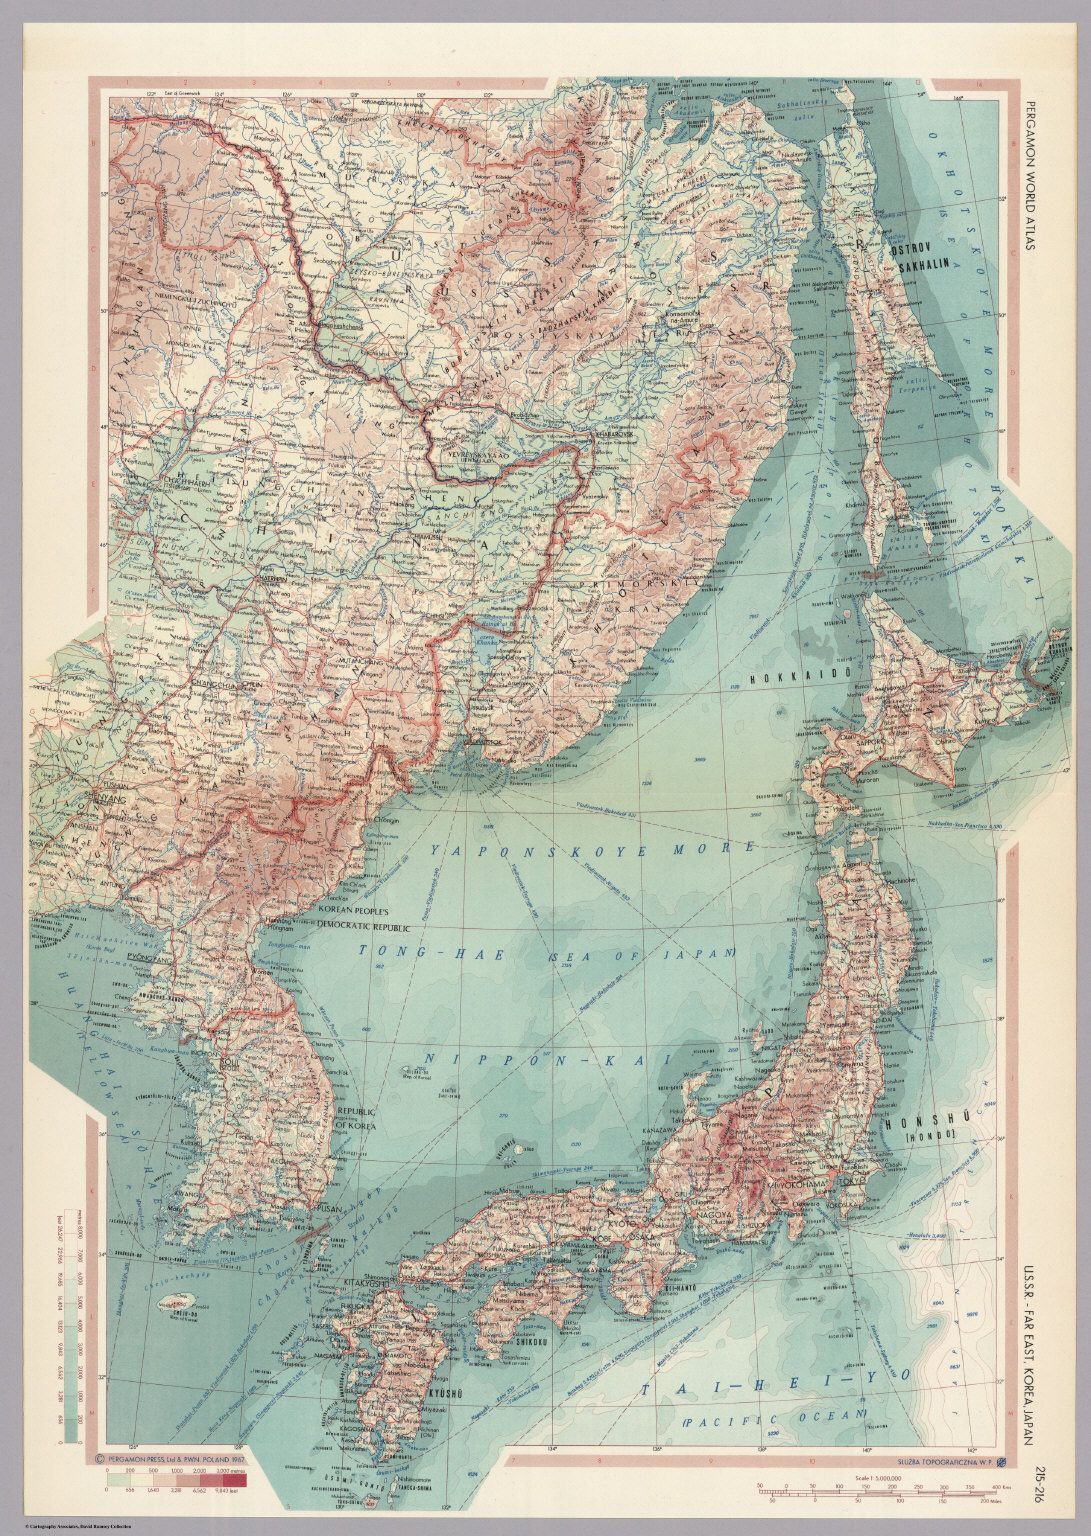 Ussr far east korea japan pergamon world atlas david georeference this map buy print export gumiabroncs Gallery